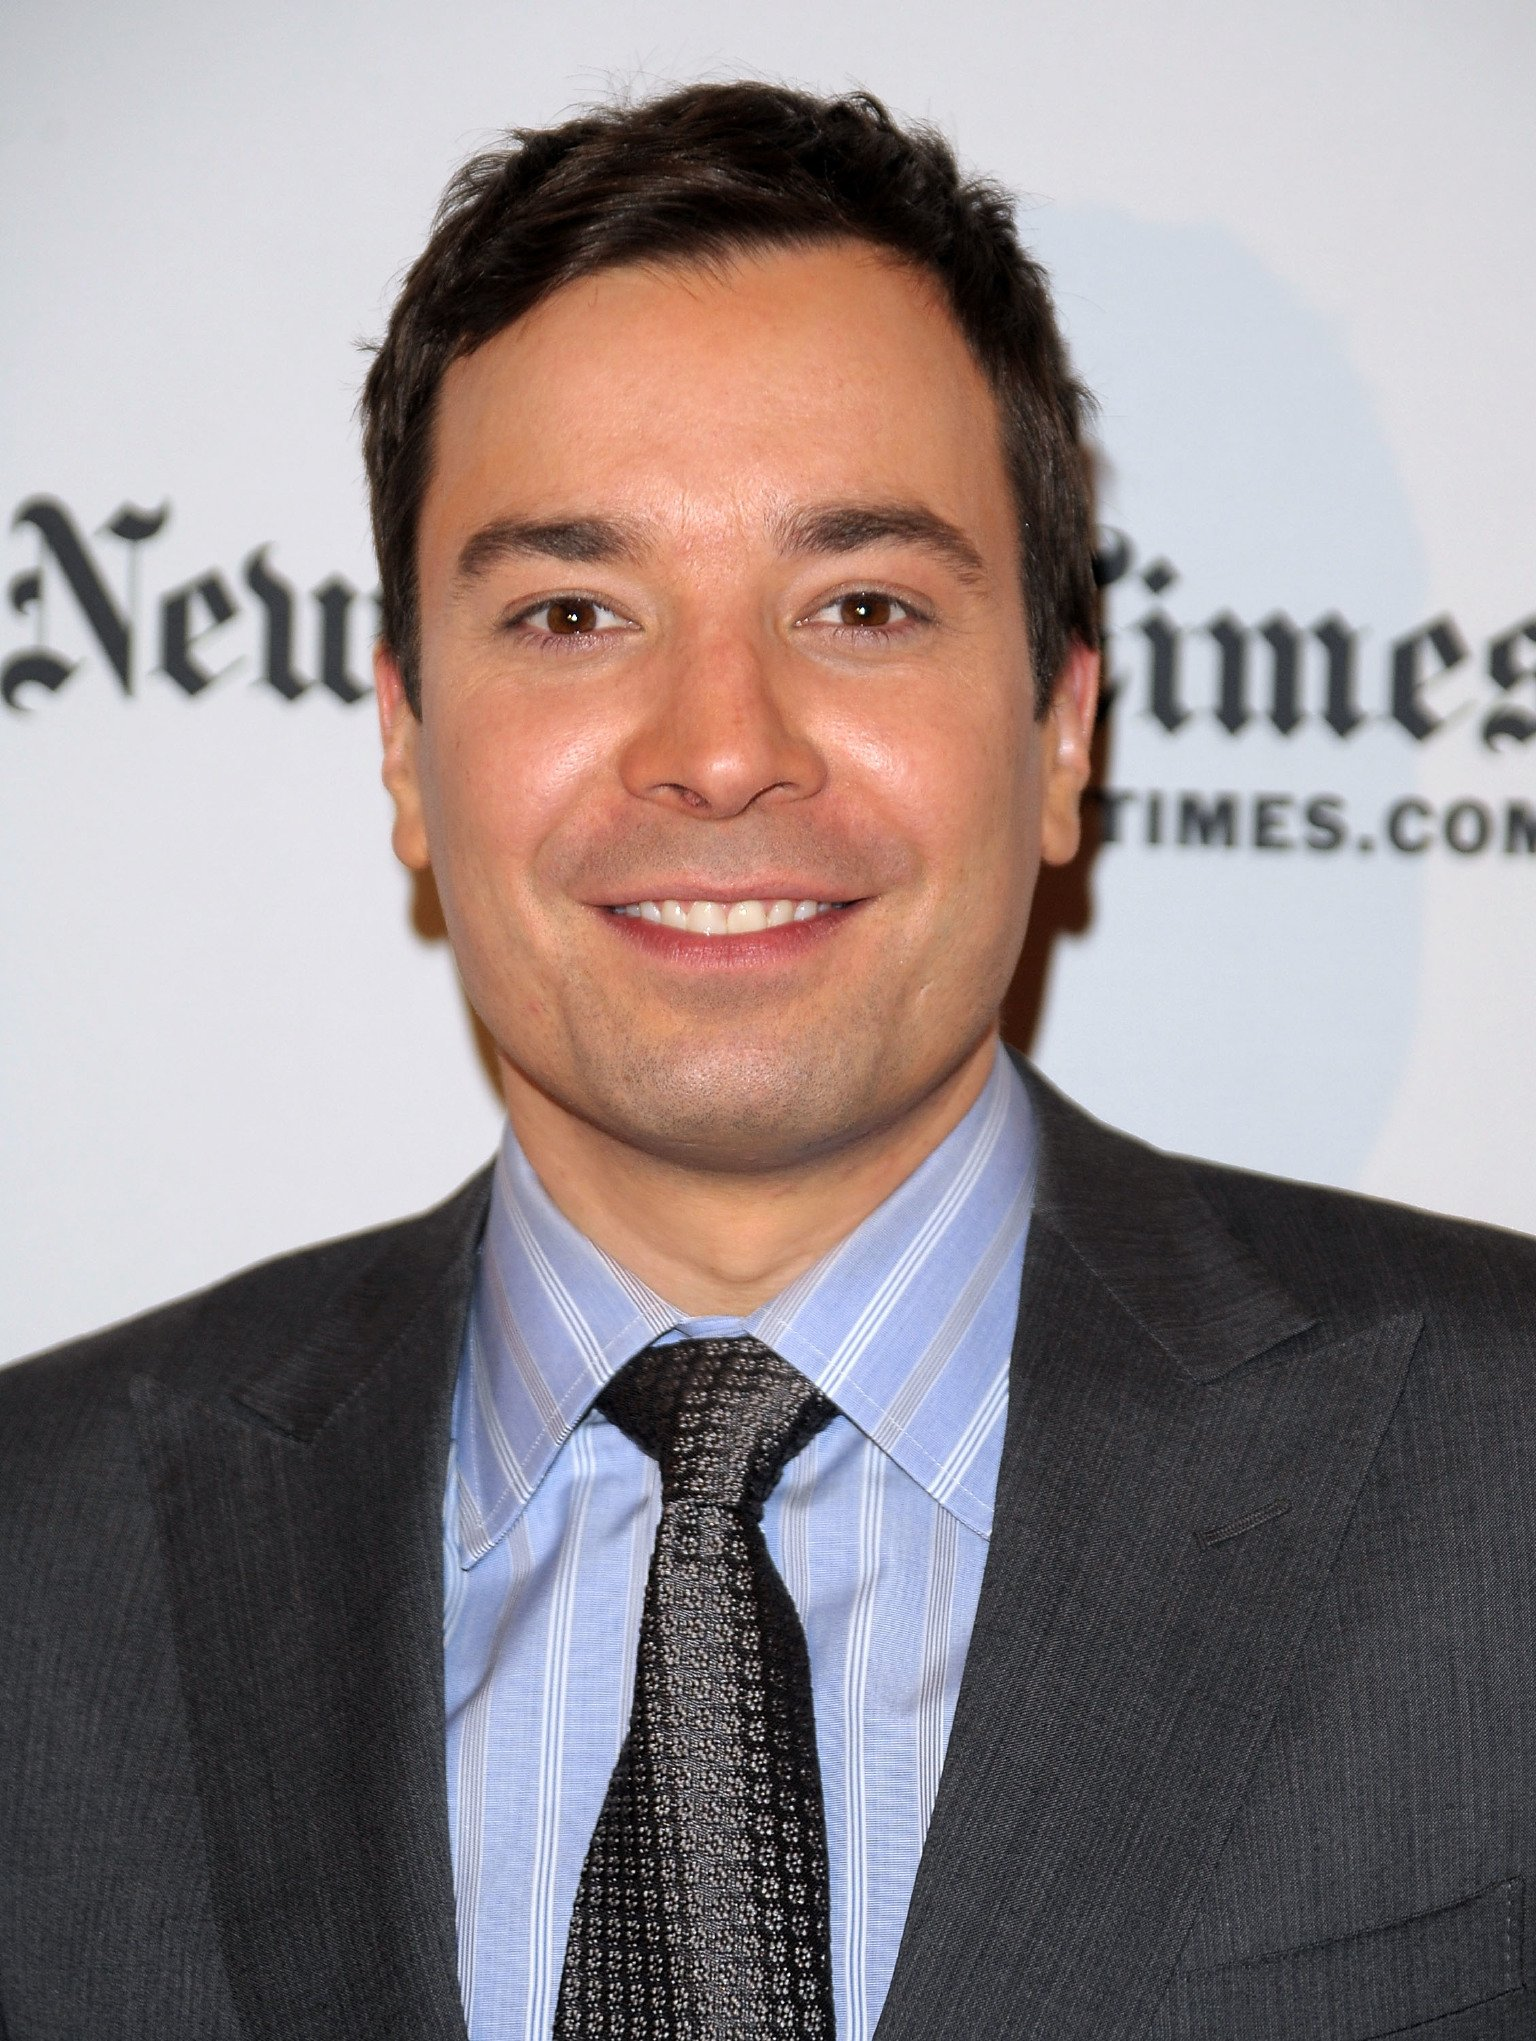 Television personality Jimmy Fallon attends the 9th Annual New York Times Arts & Leisure Weekend at The Times Center on January 8, 2010 | Photo: Getty Images